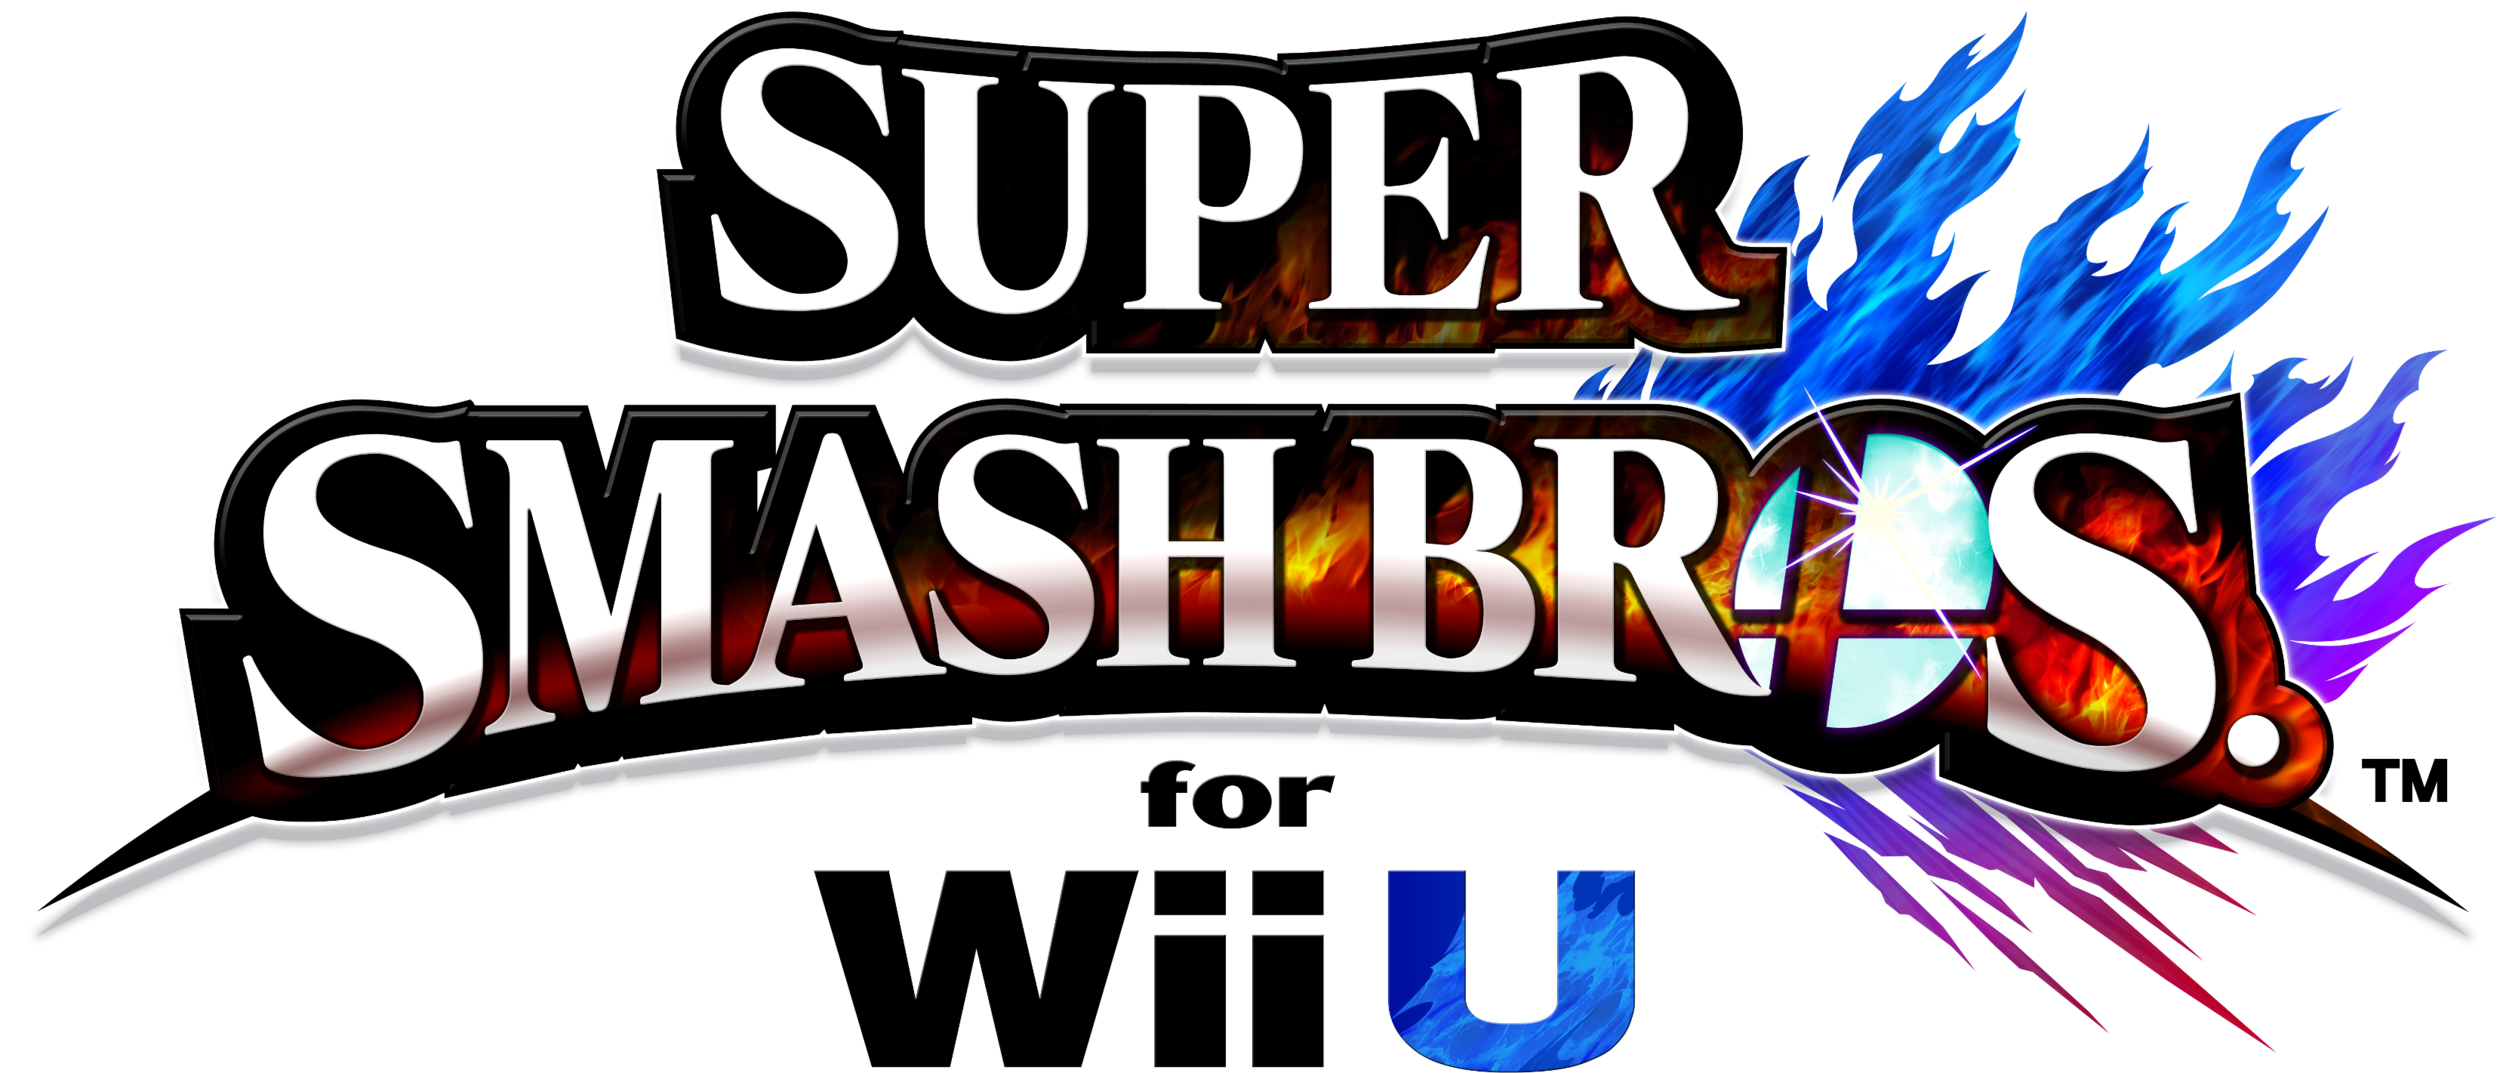 Super_Smash_Bros._Wii_U